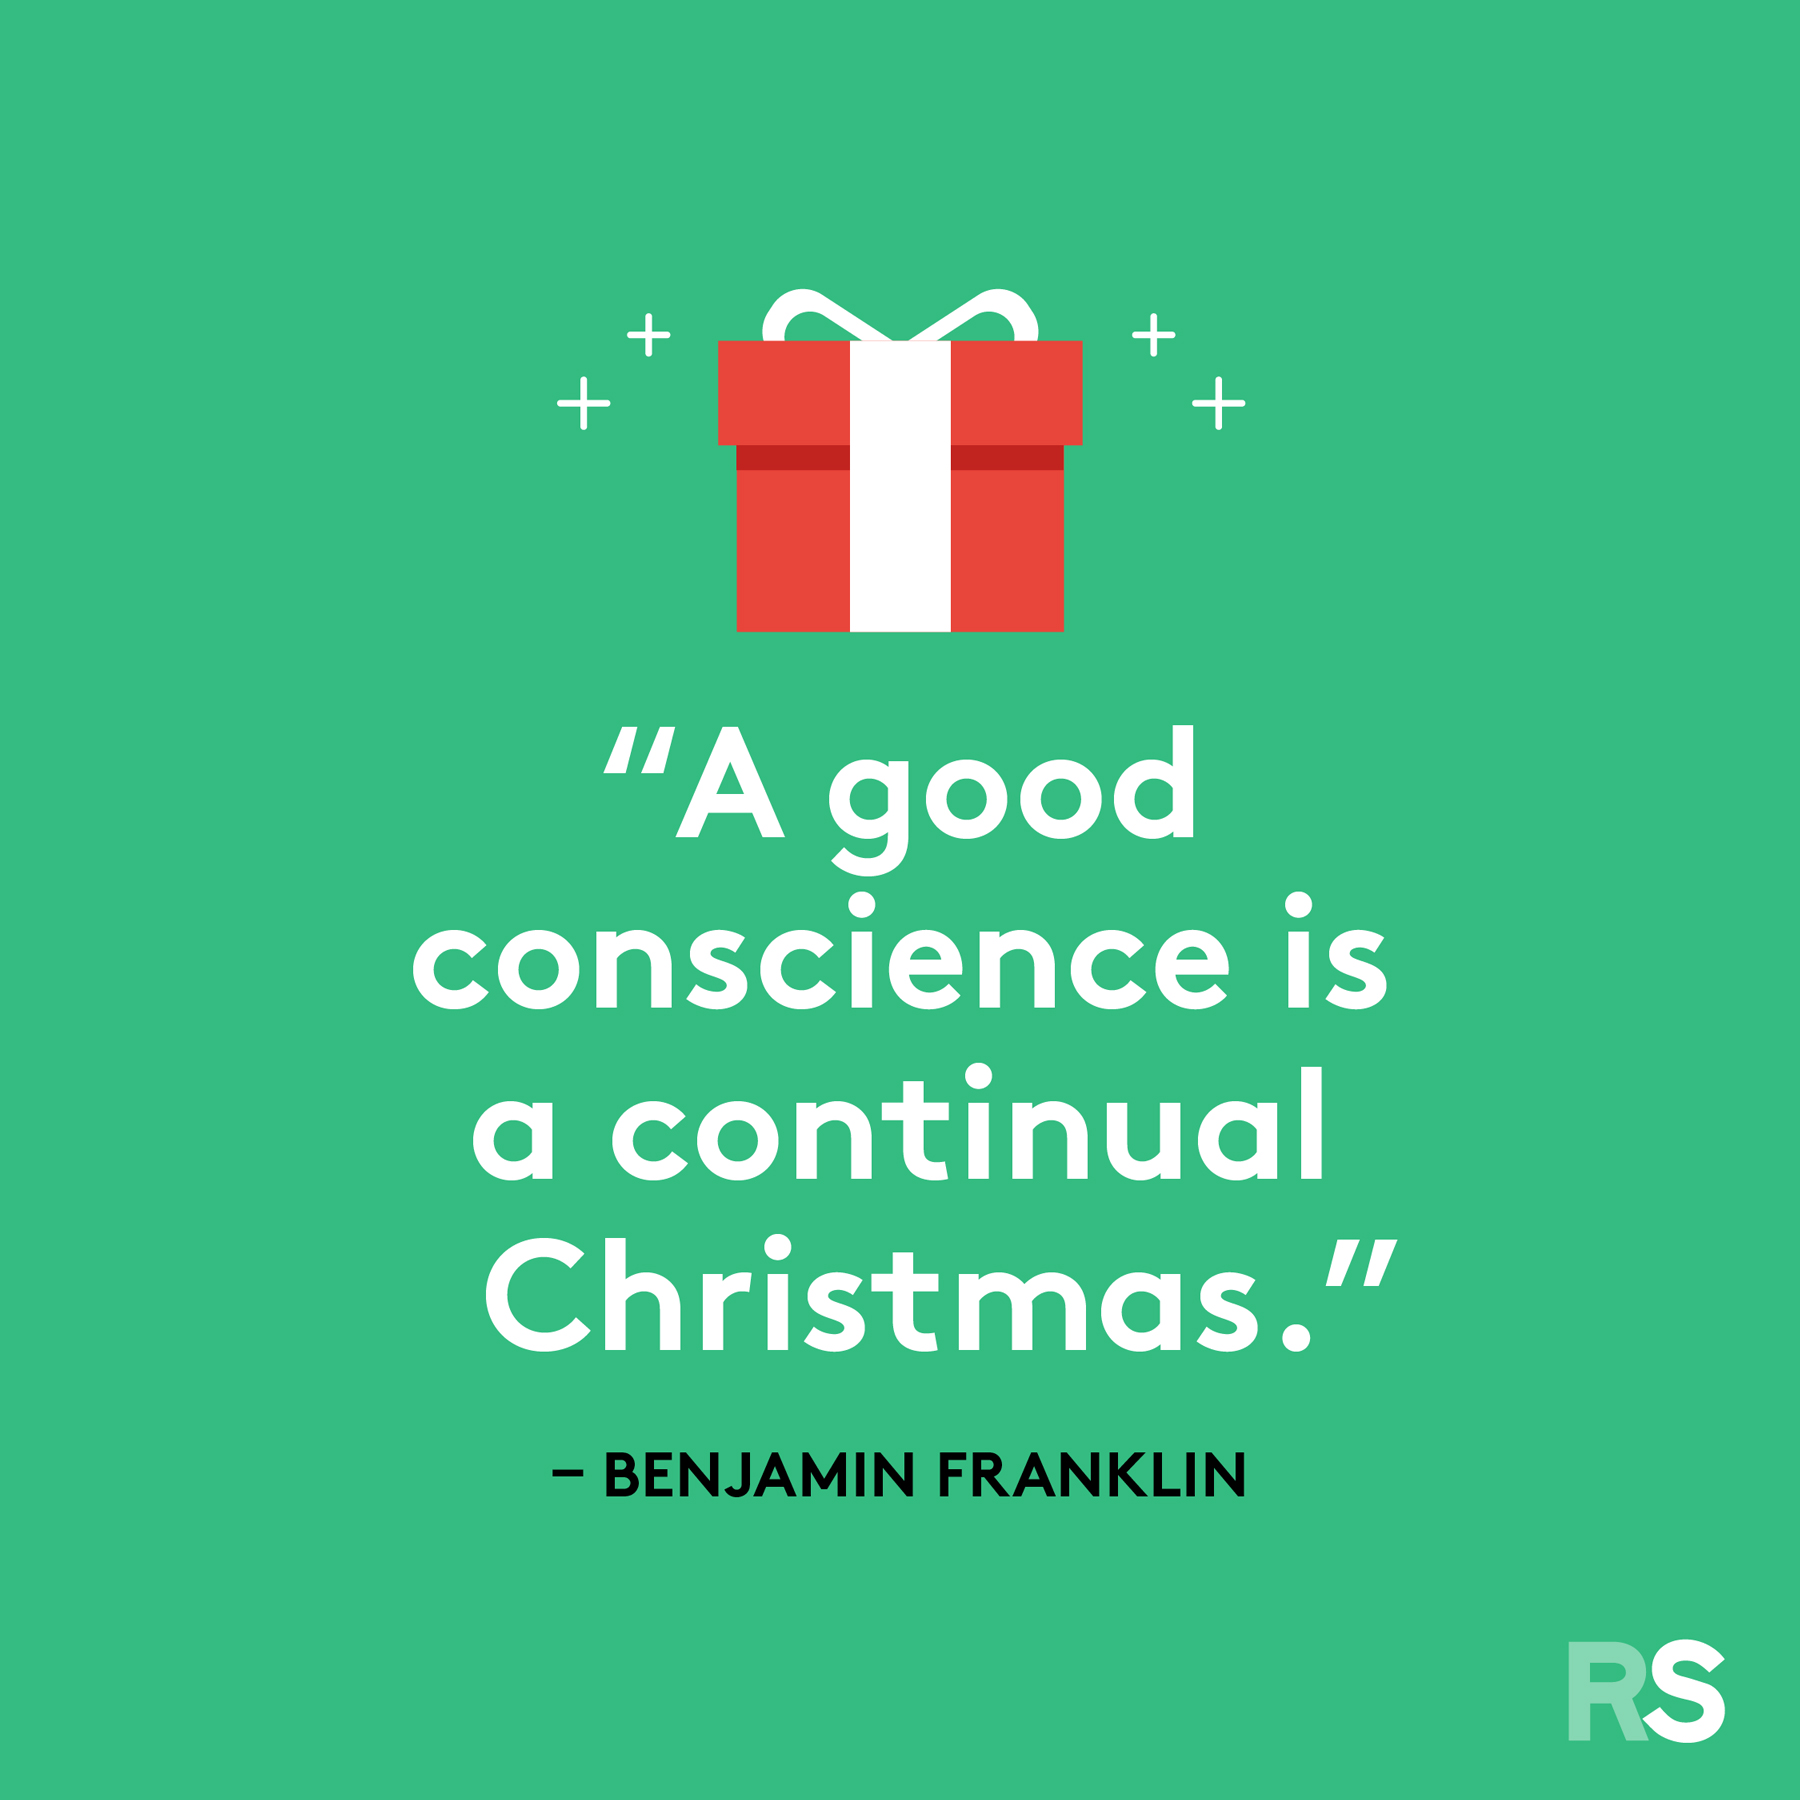 Best Christmas quotes - Benjamin Franklin